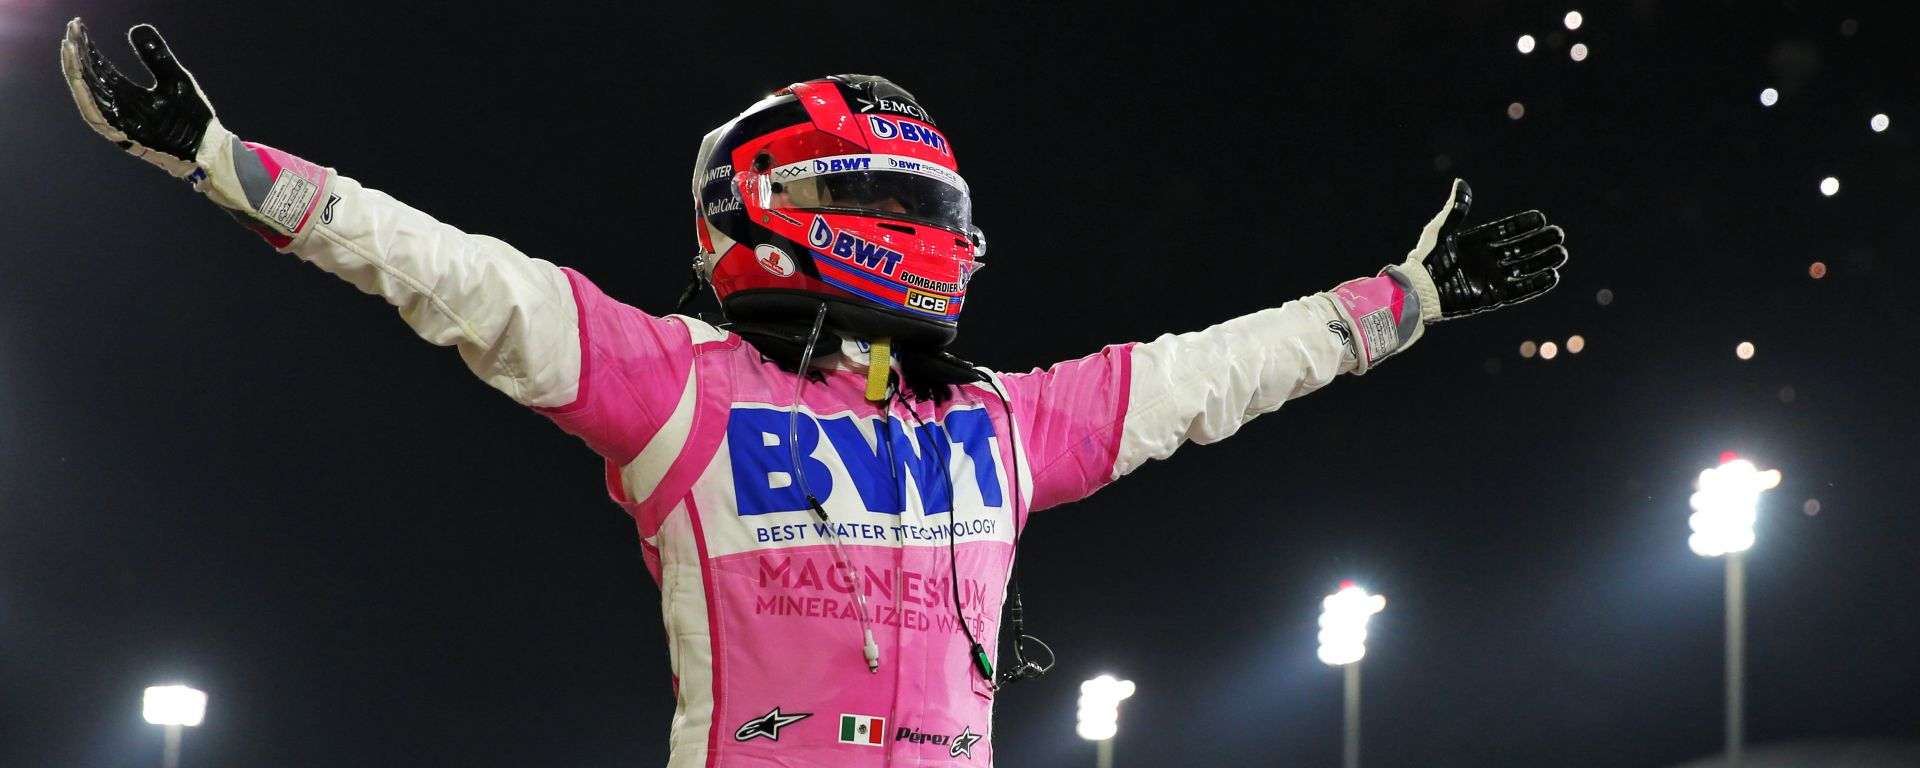 F1 GP Sakhir 2020, Manama: Sergio Perez (Racing Point F1)